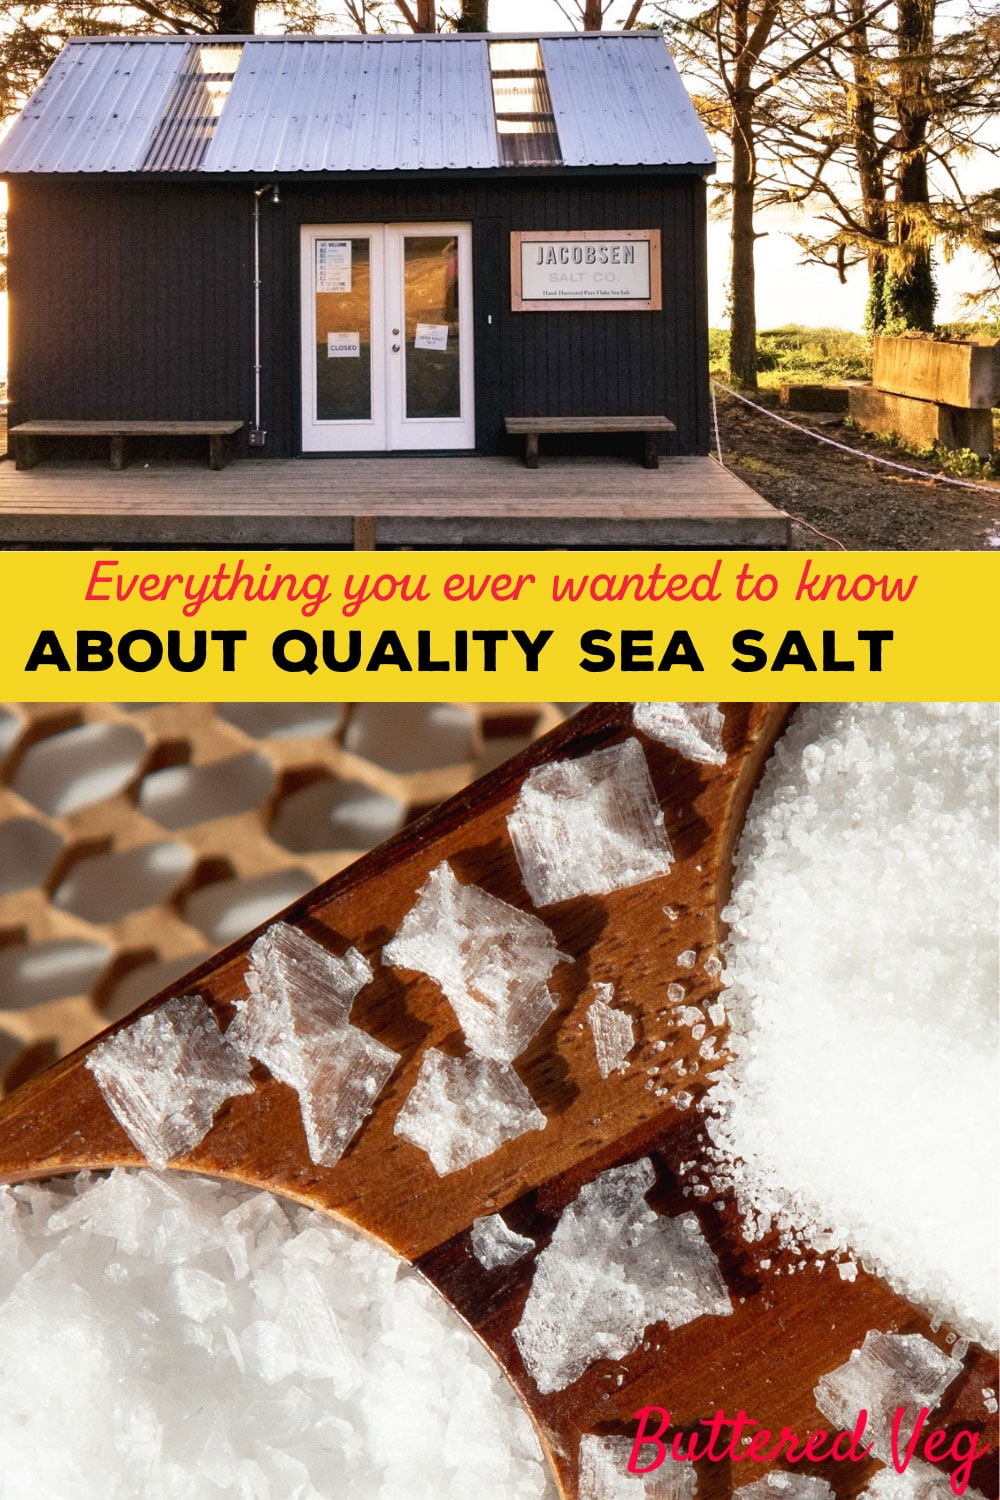 Salt Guide: This Quality Sea Salt Looks Like Shaved Ice, And